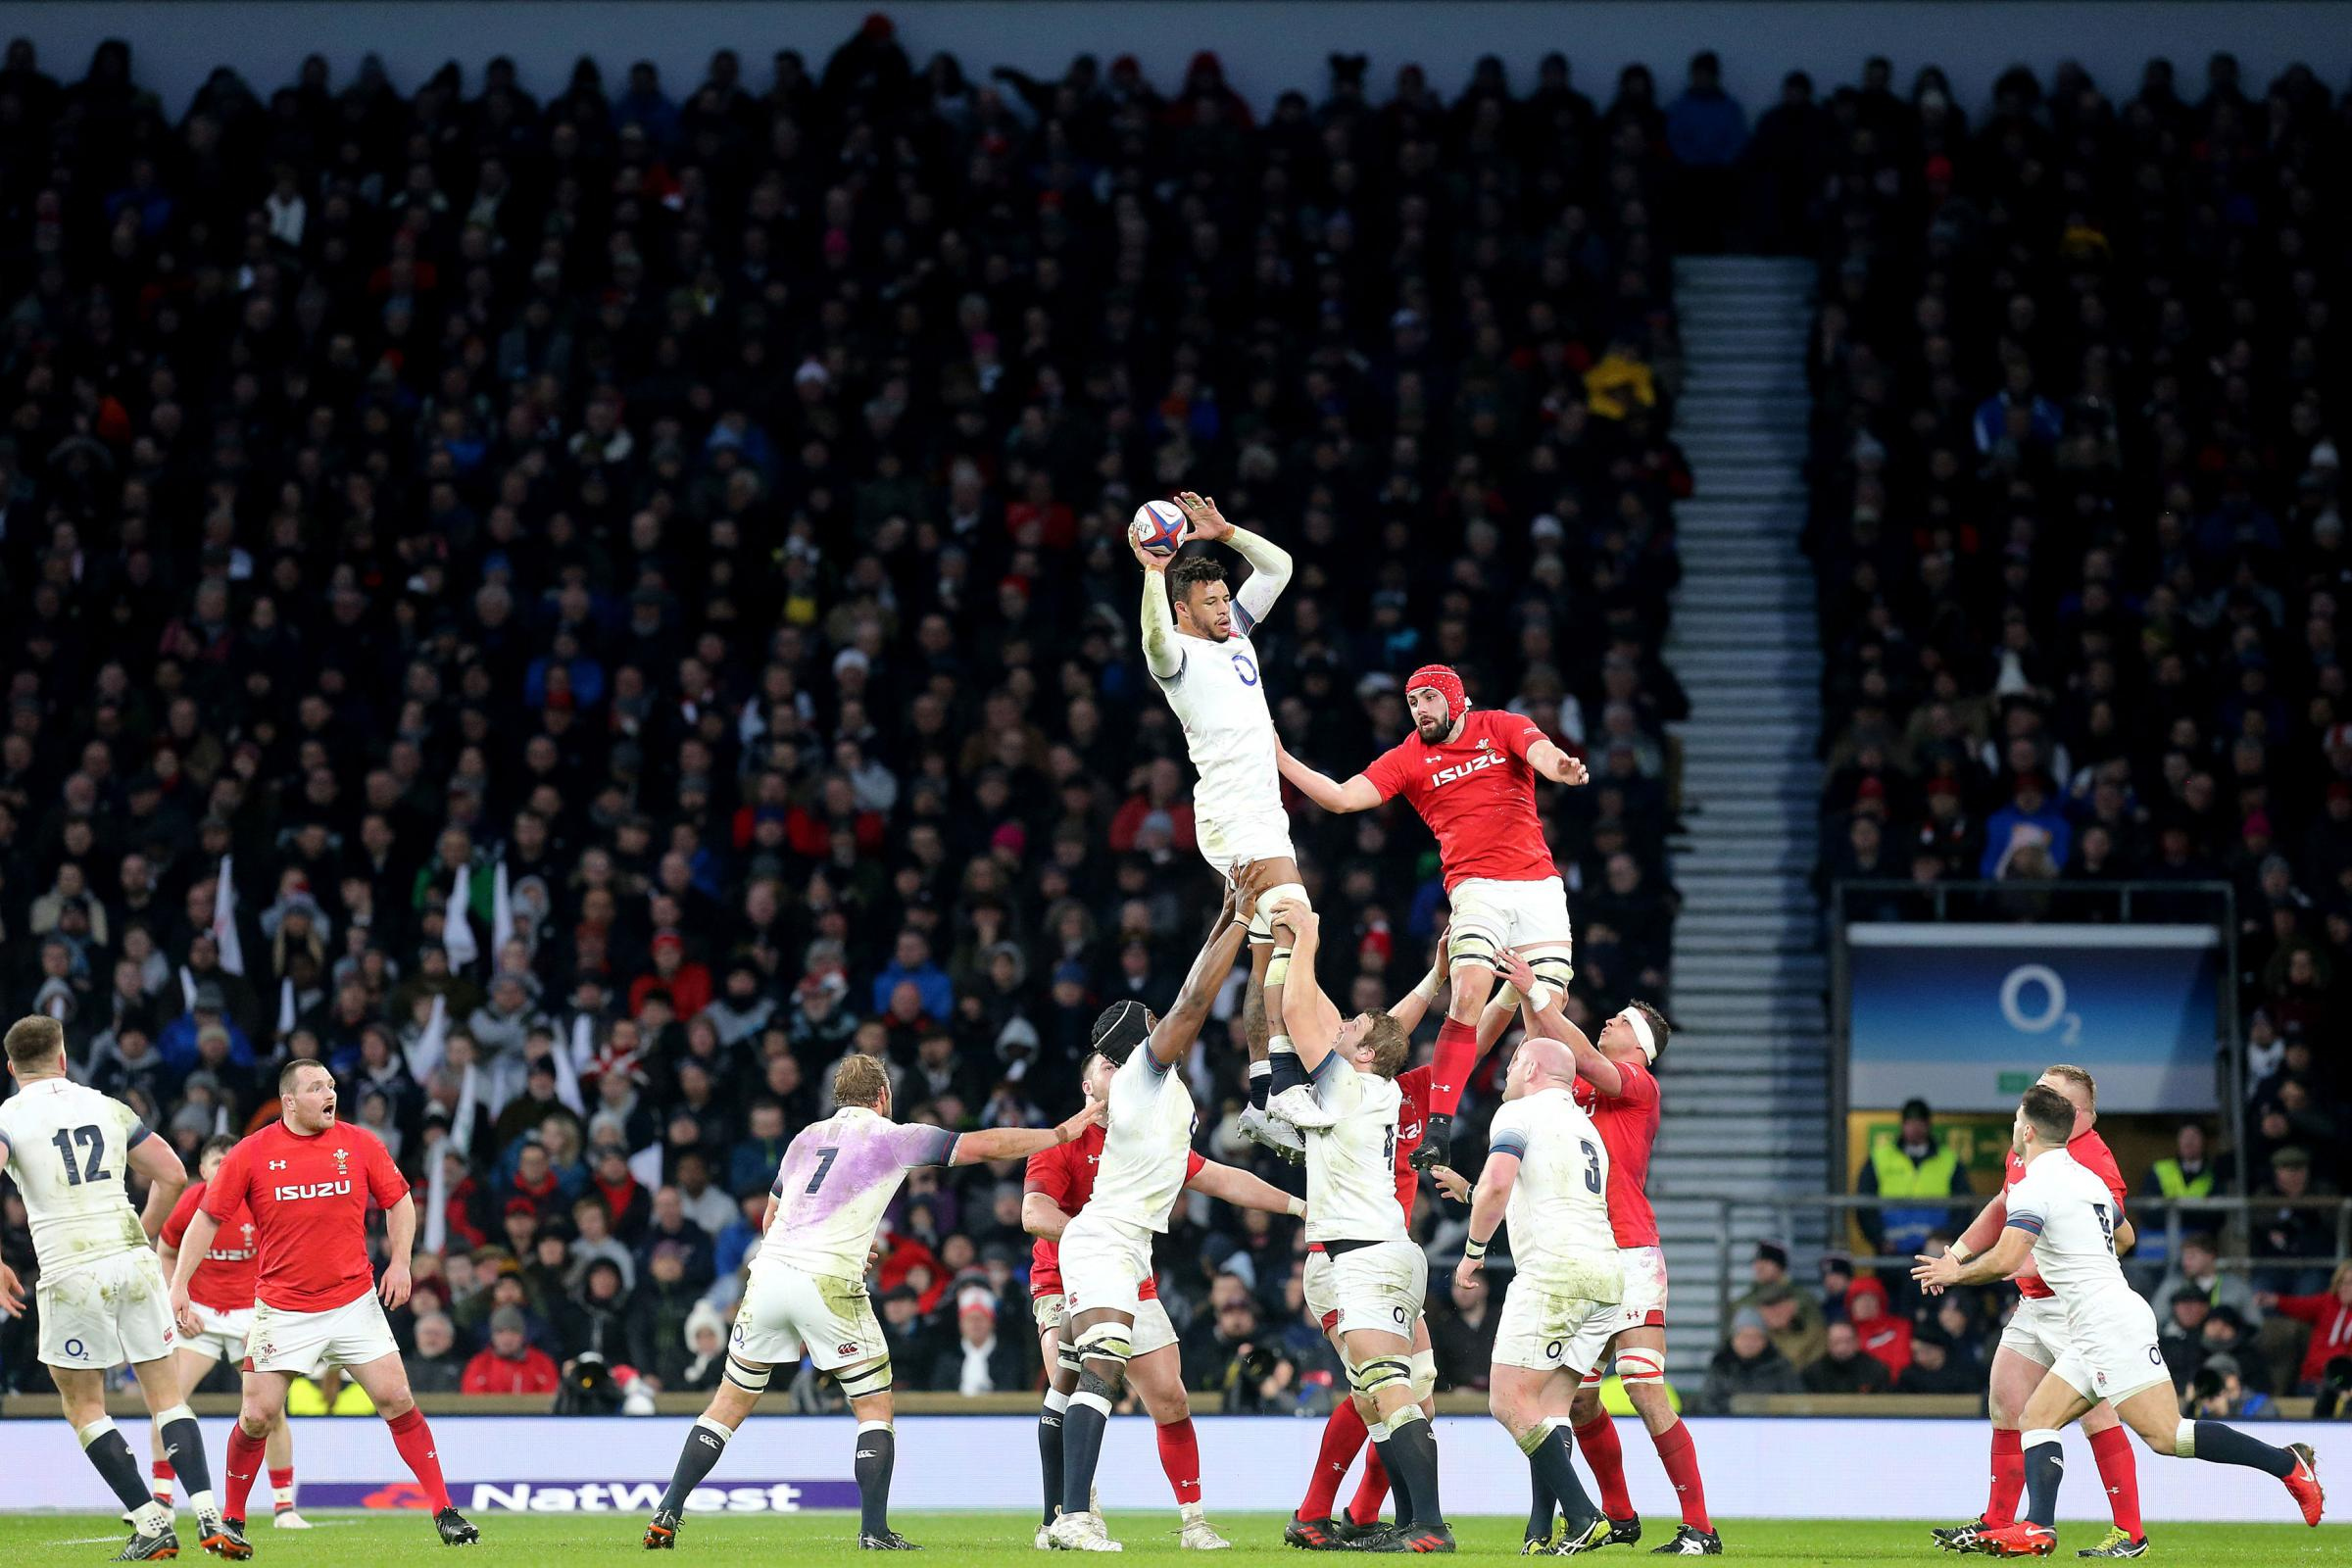 LINEOUT CHALLENGE: Wales lock Cory Hill